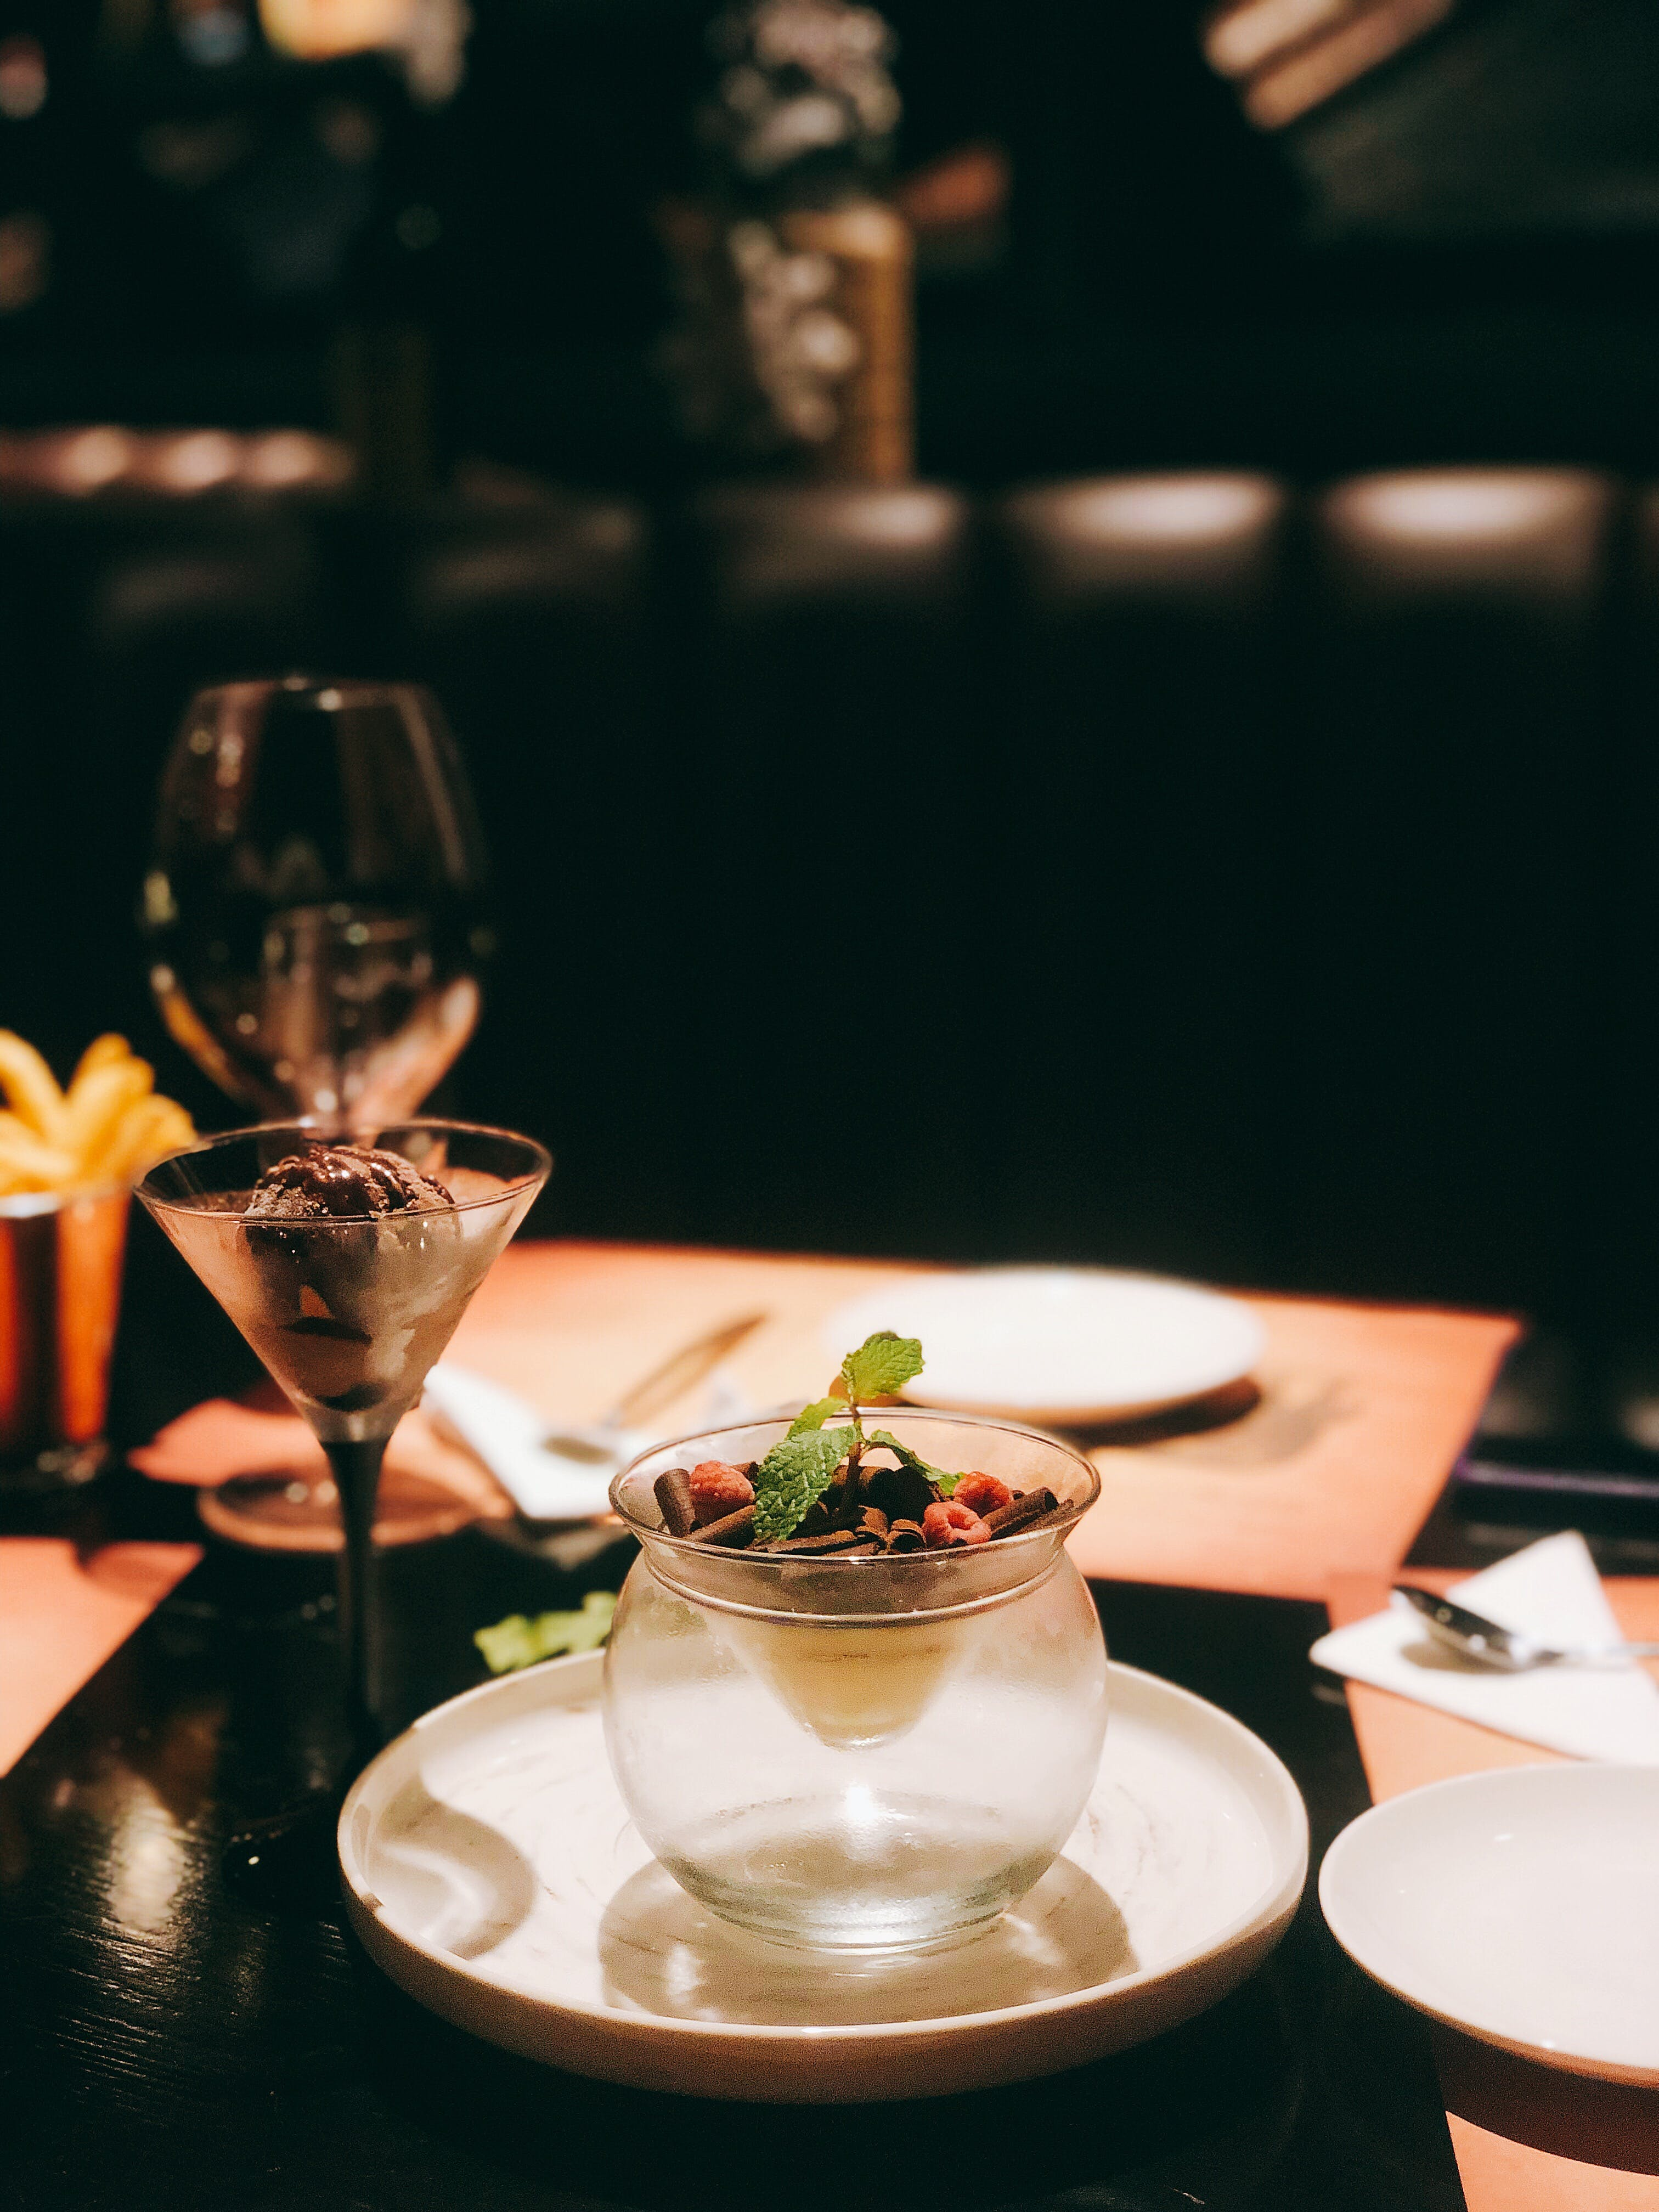 Cocktail Glass Beside Plate With Cup